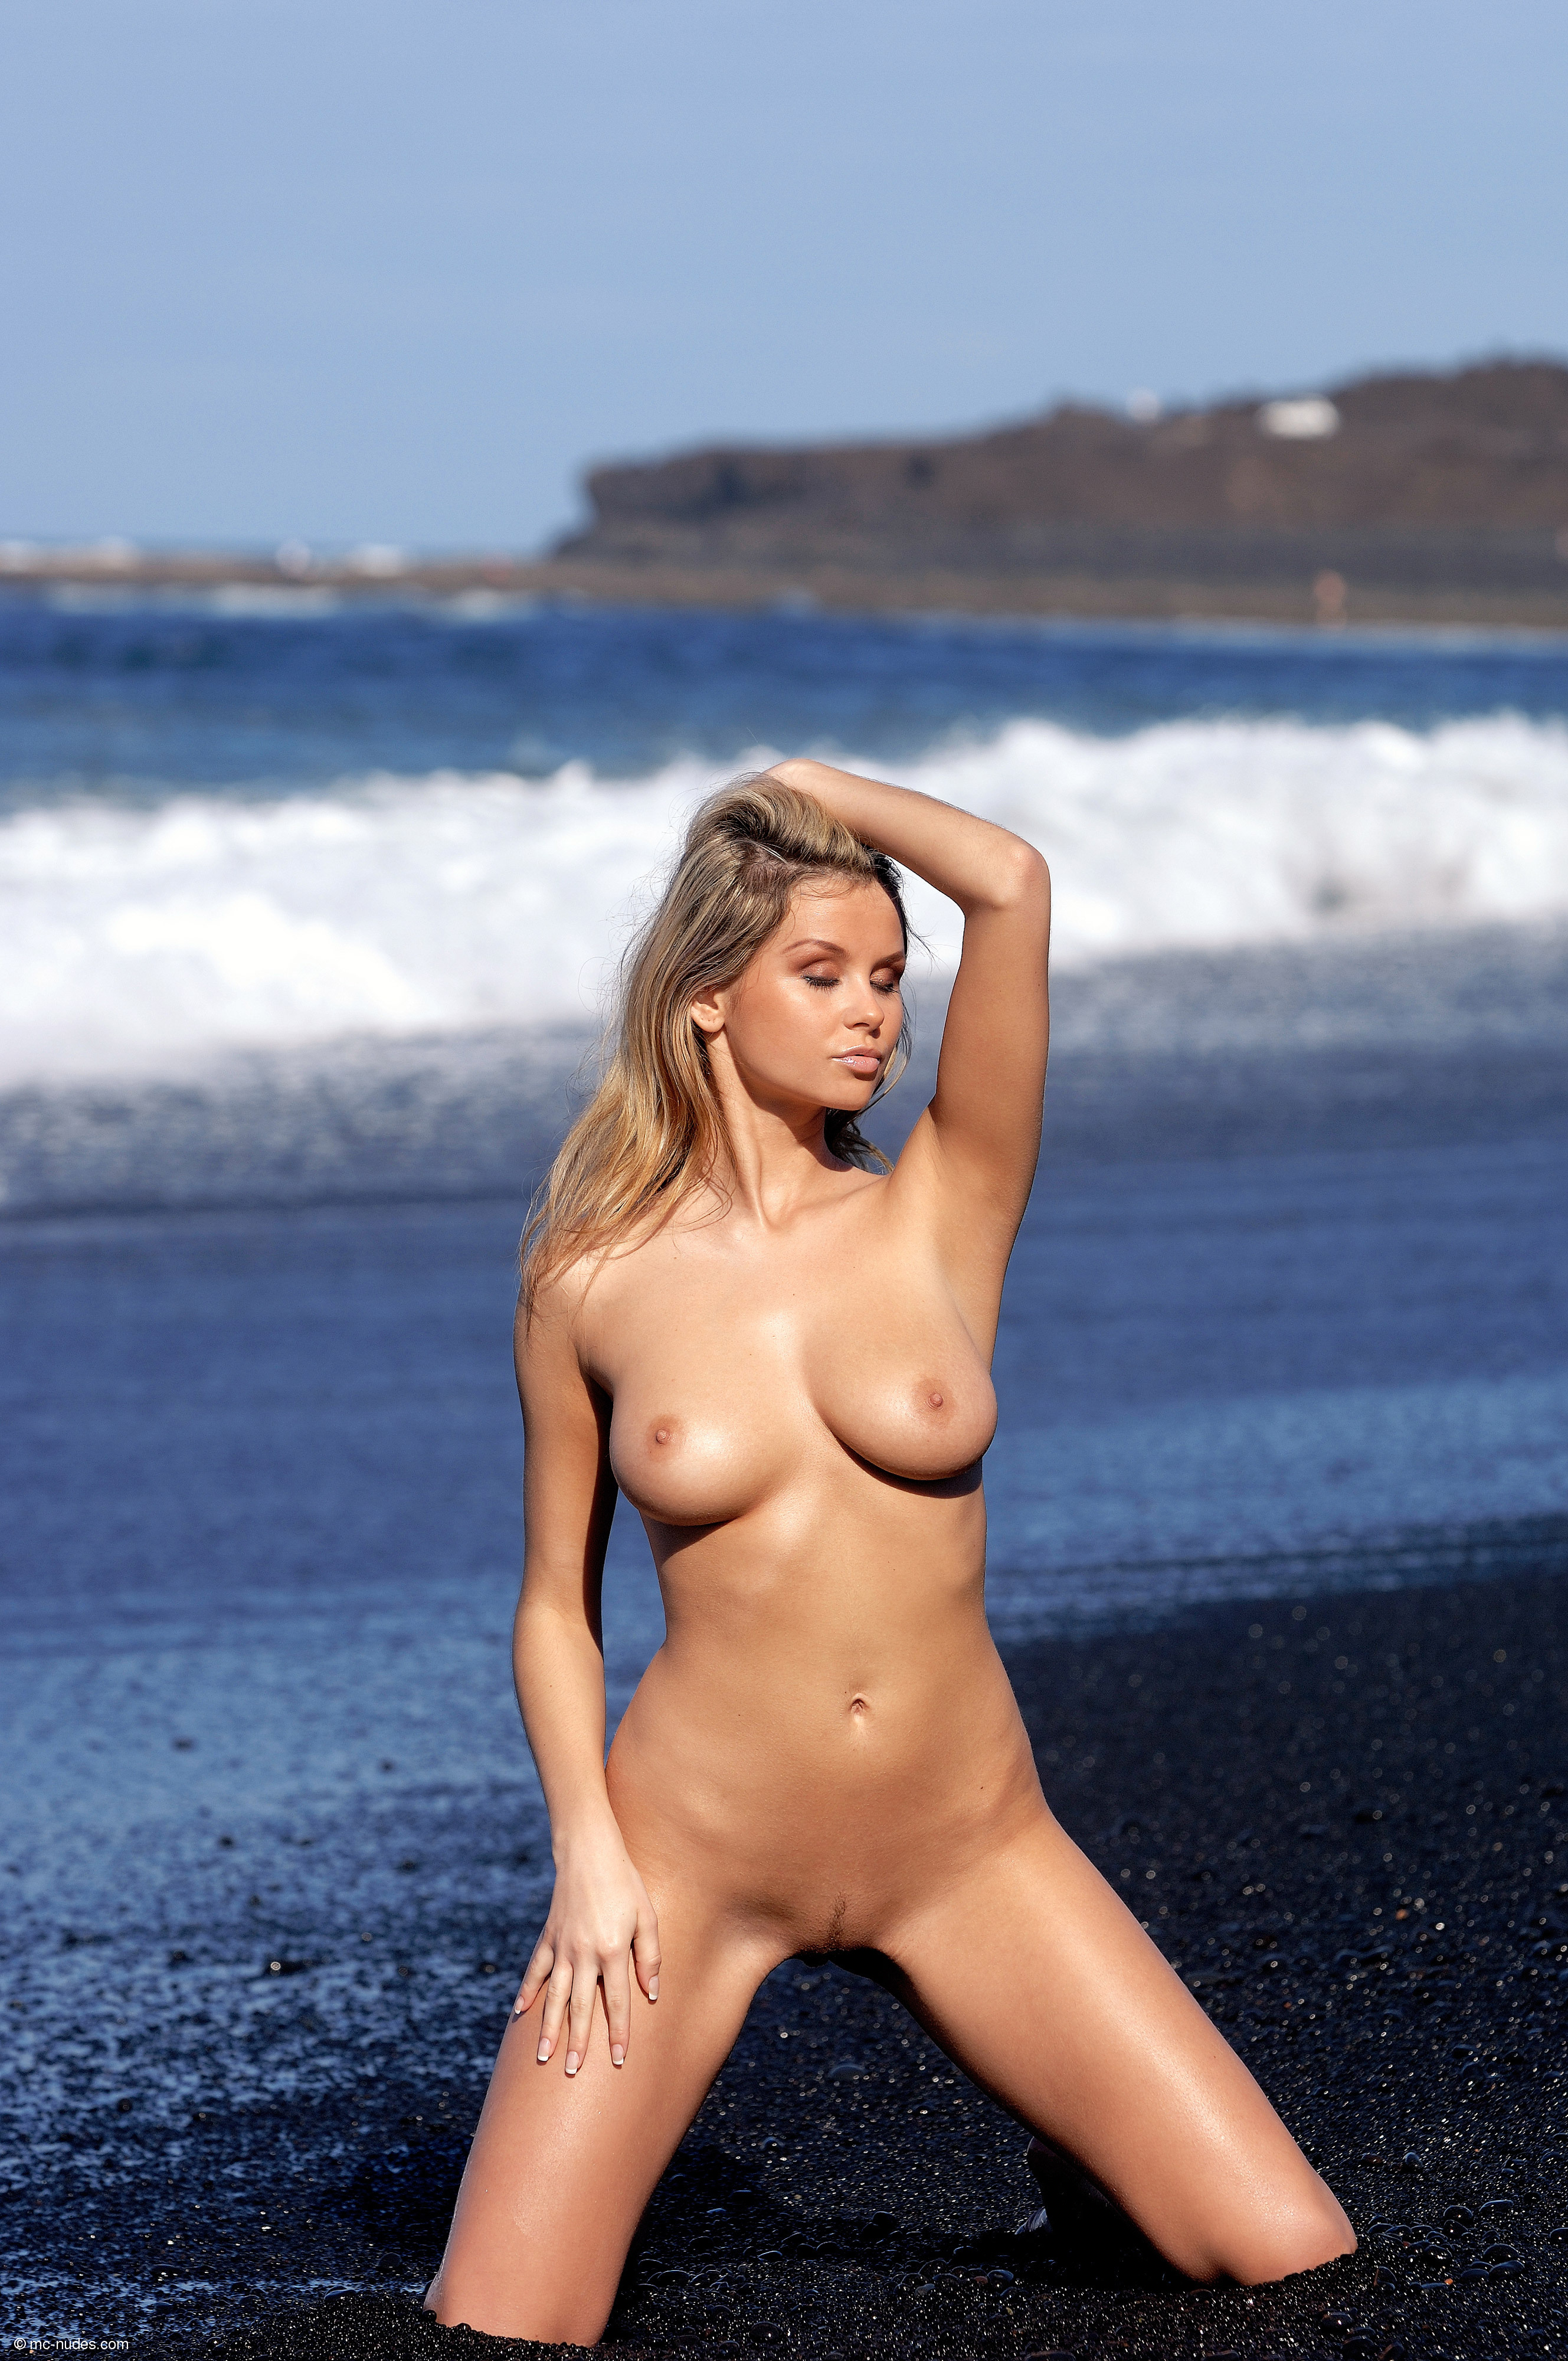 Nude babes insex fucks images